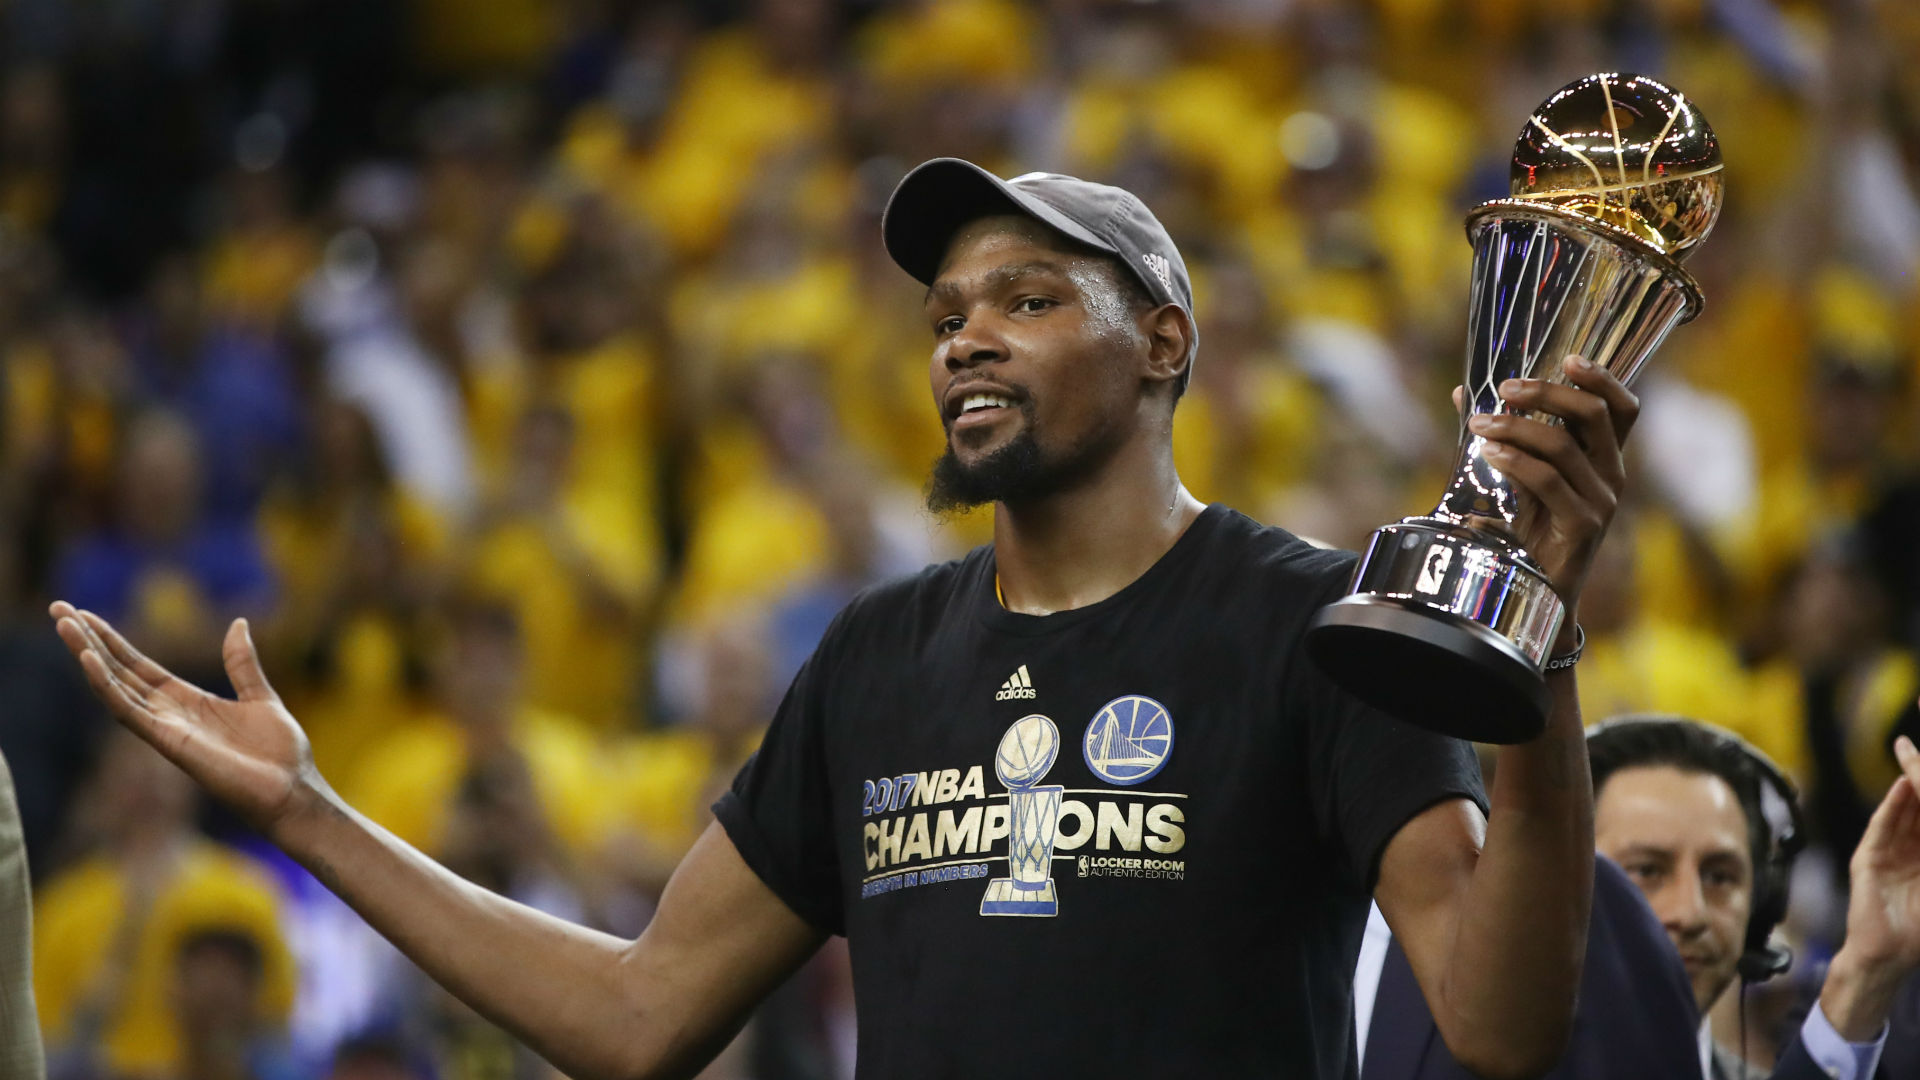 Golden moment: Kevin Durant, Stephen Curry lead Warriors to NBA title